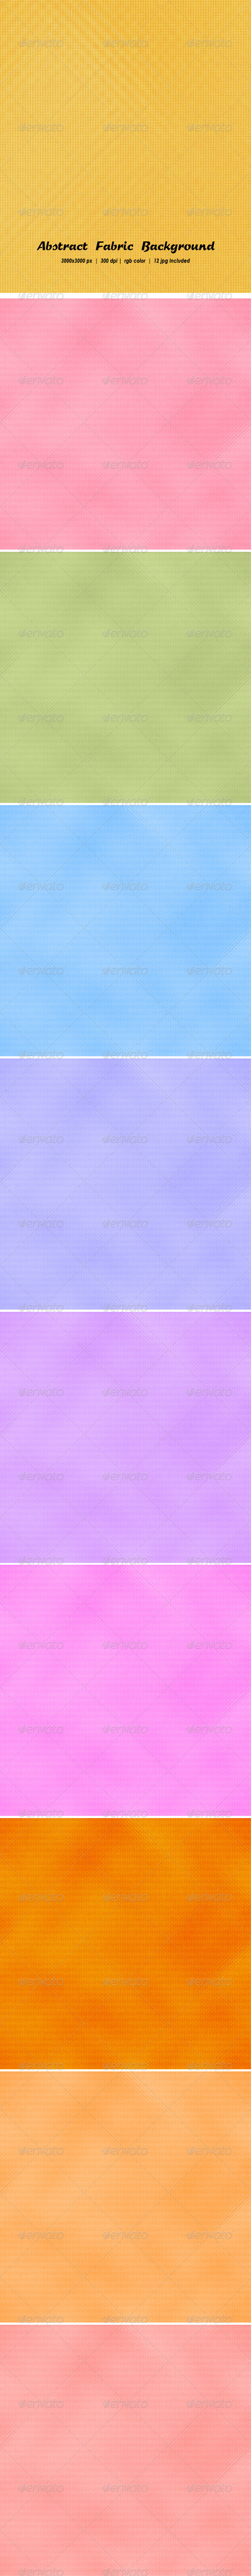 GraphicRiver Abstract Fabric Background 2 4914158